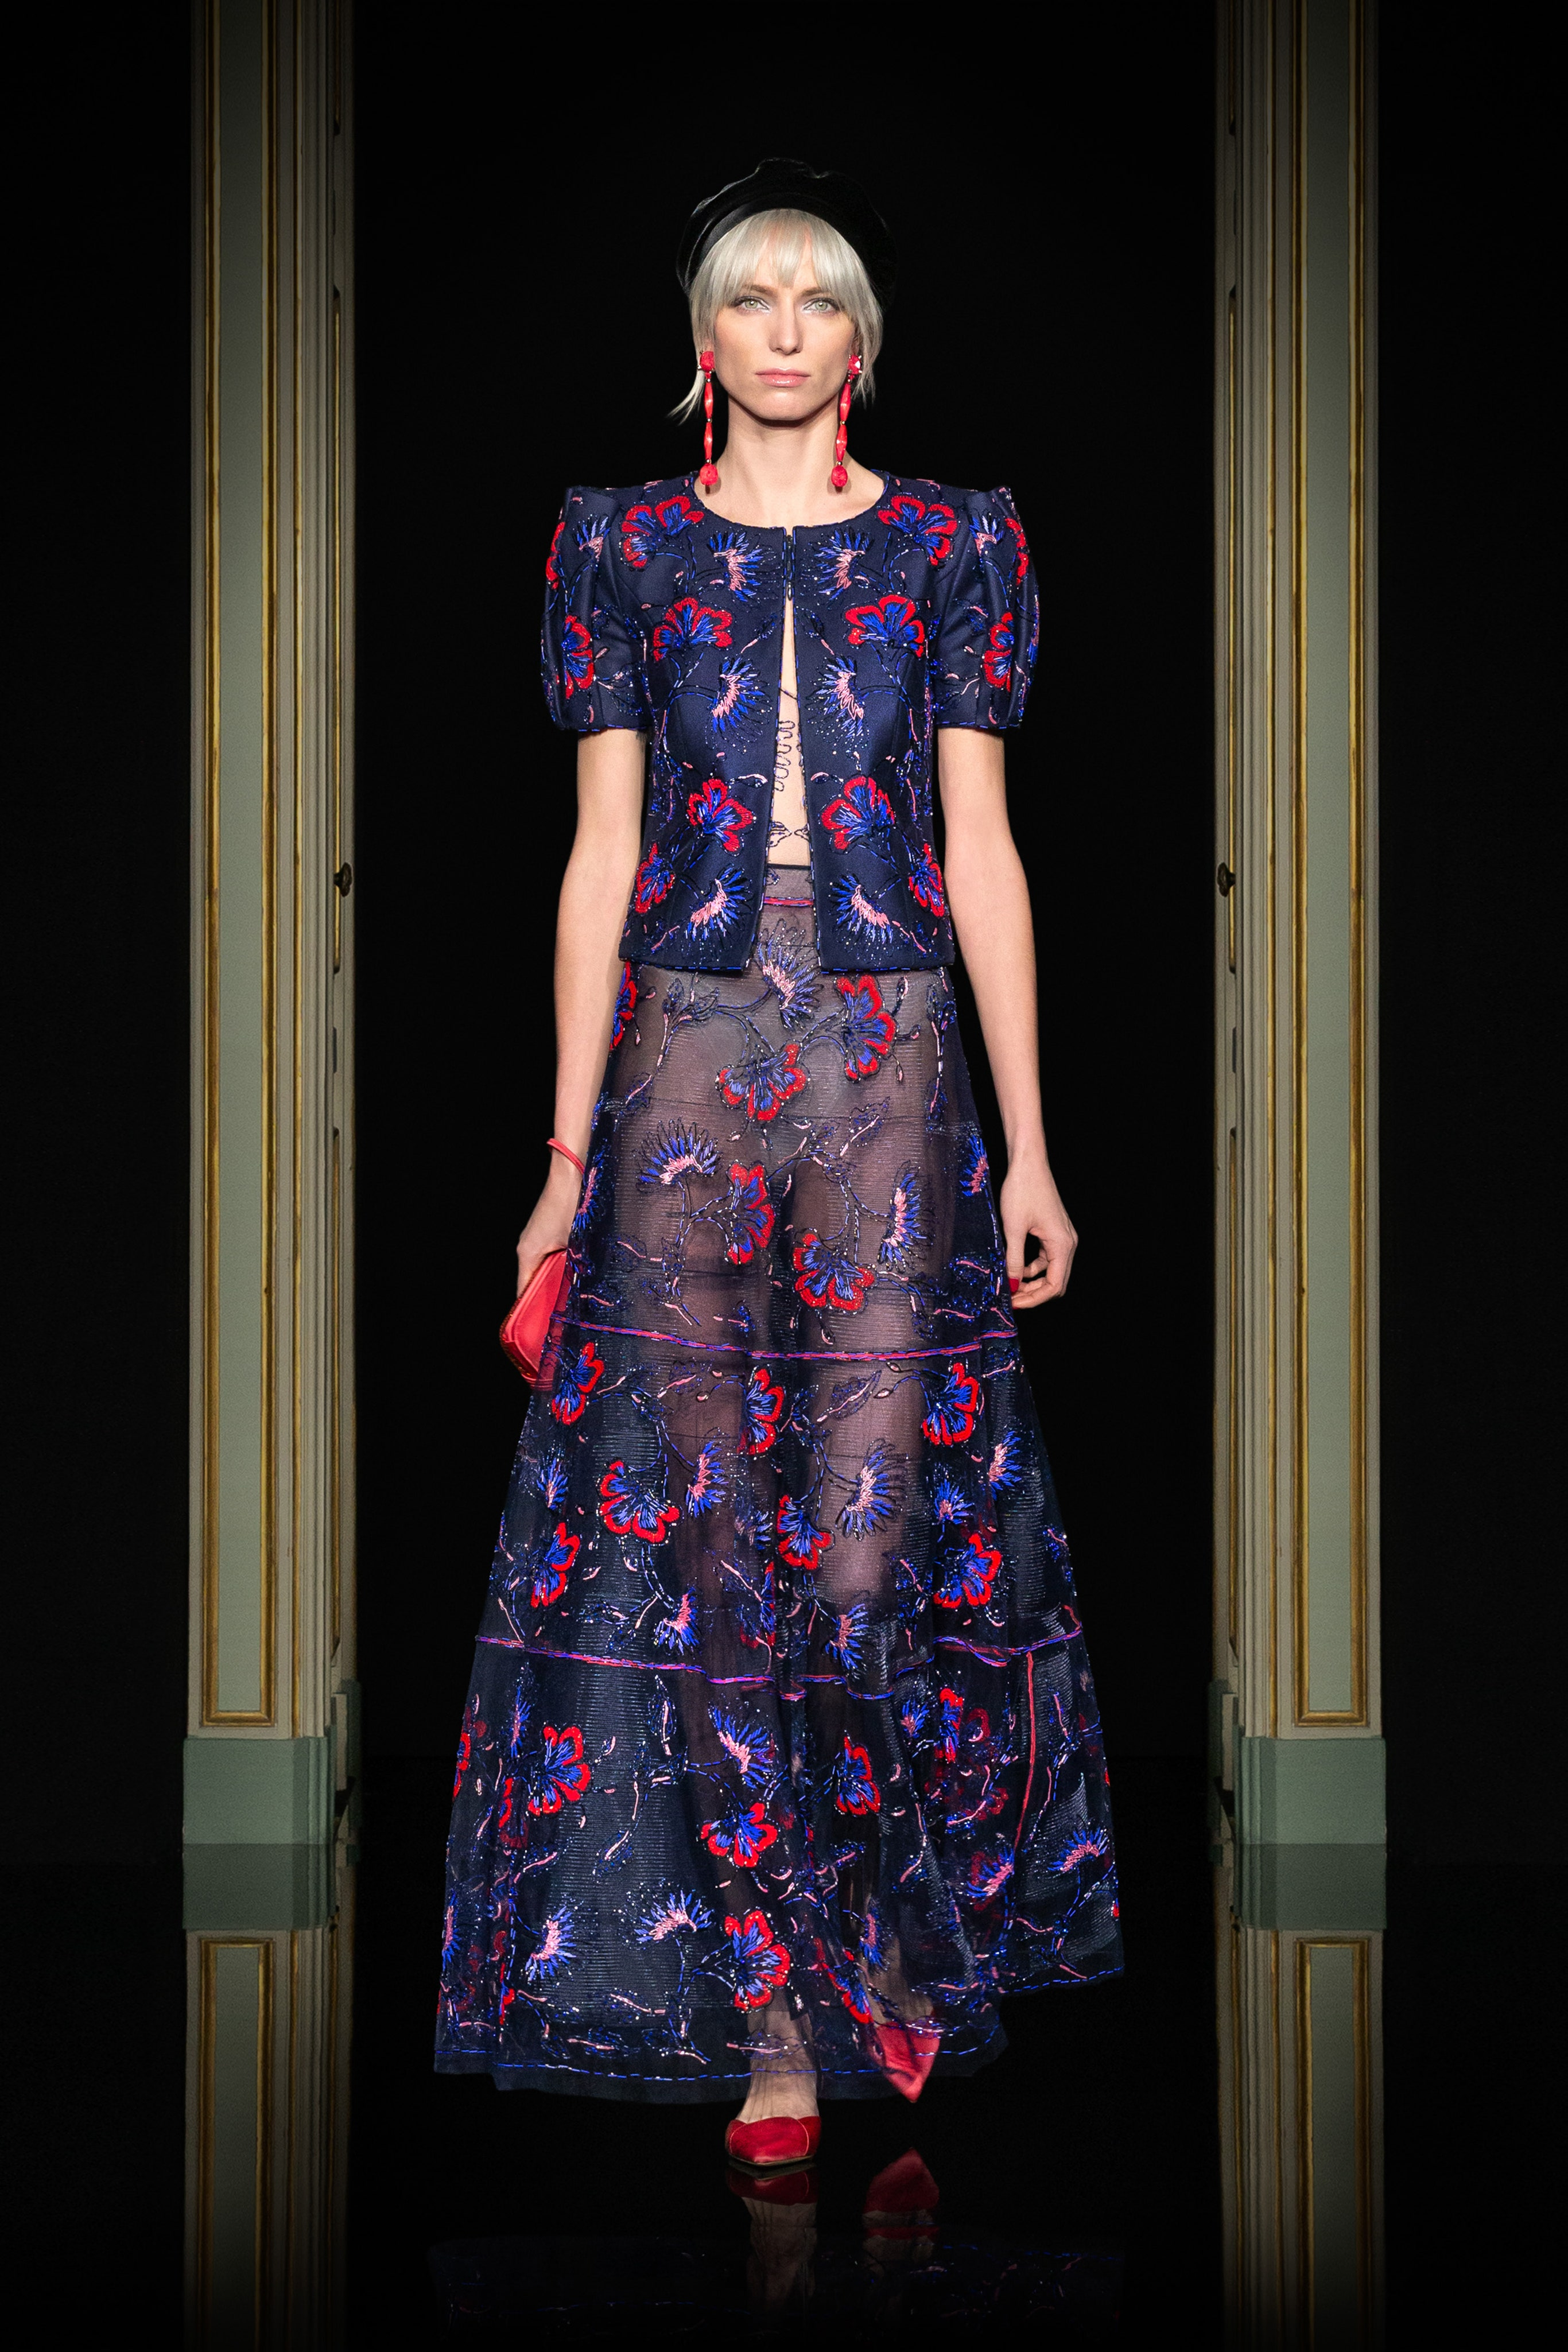 Armani Privé Spring 2021 Couture. A lady wearing a sheer midnight blue floral embroidered dress and bolero jacket.